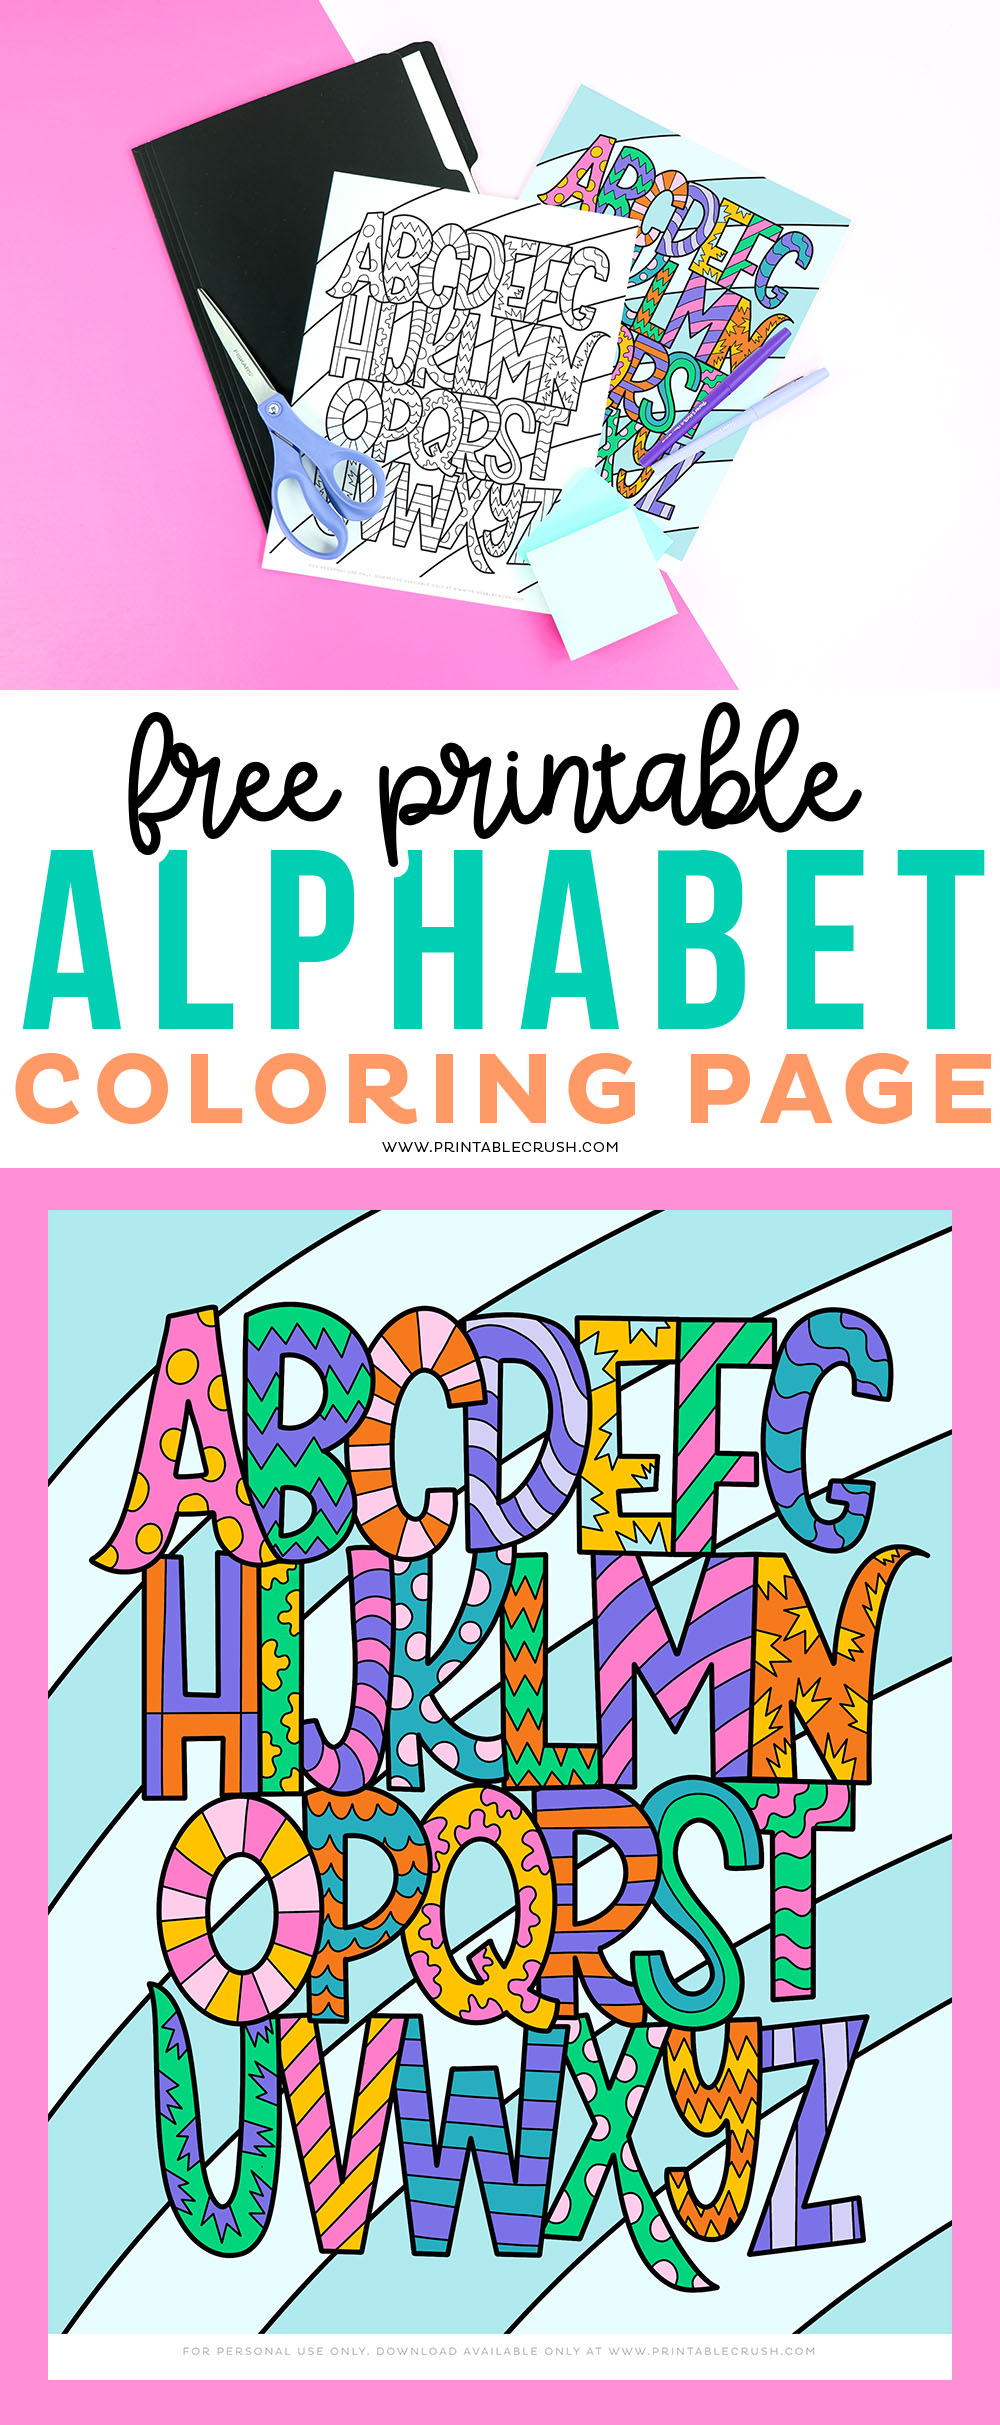 Free Alphabet Coloring Page - hand letteredprintable download